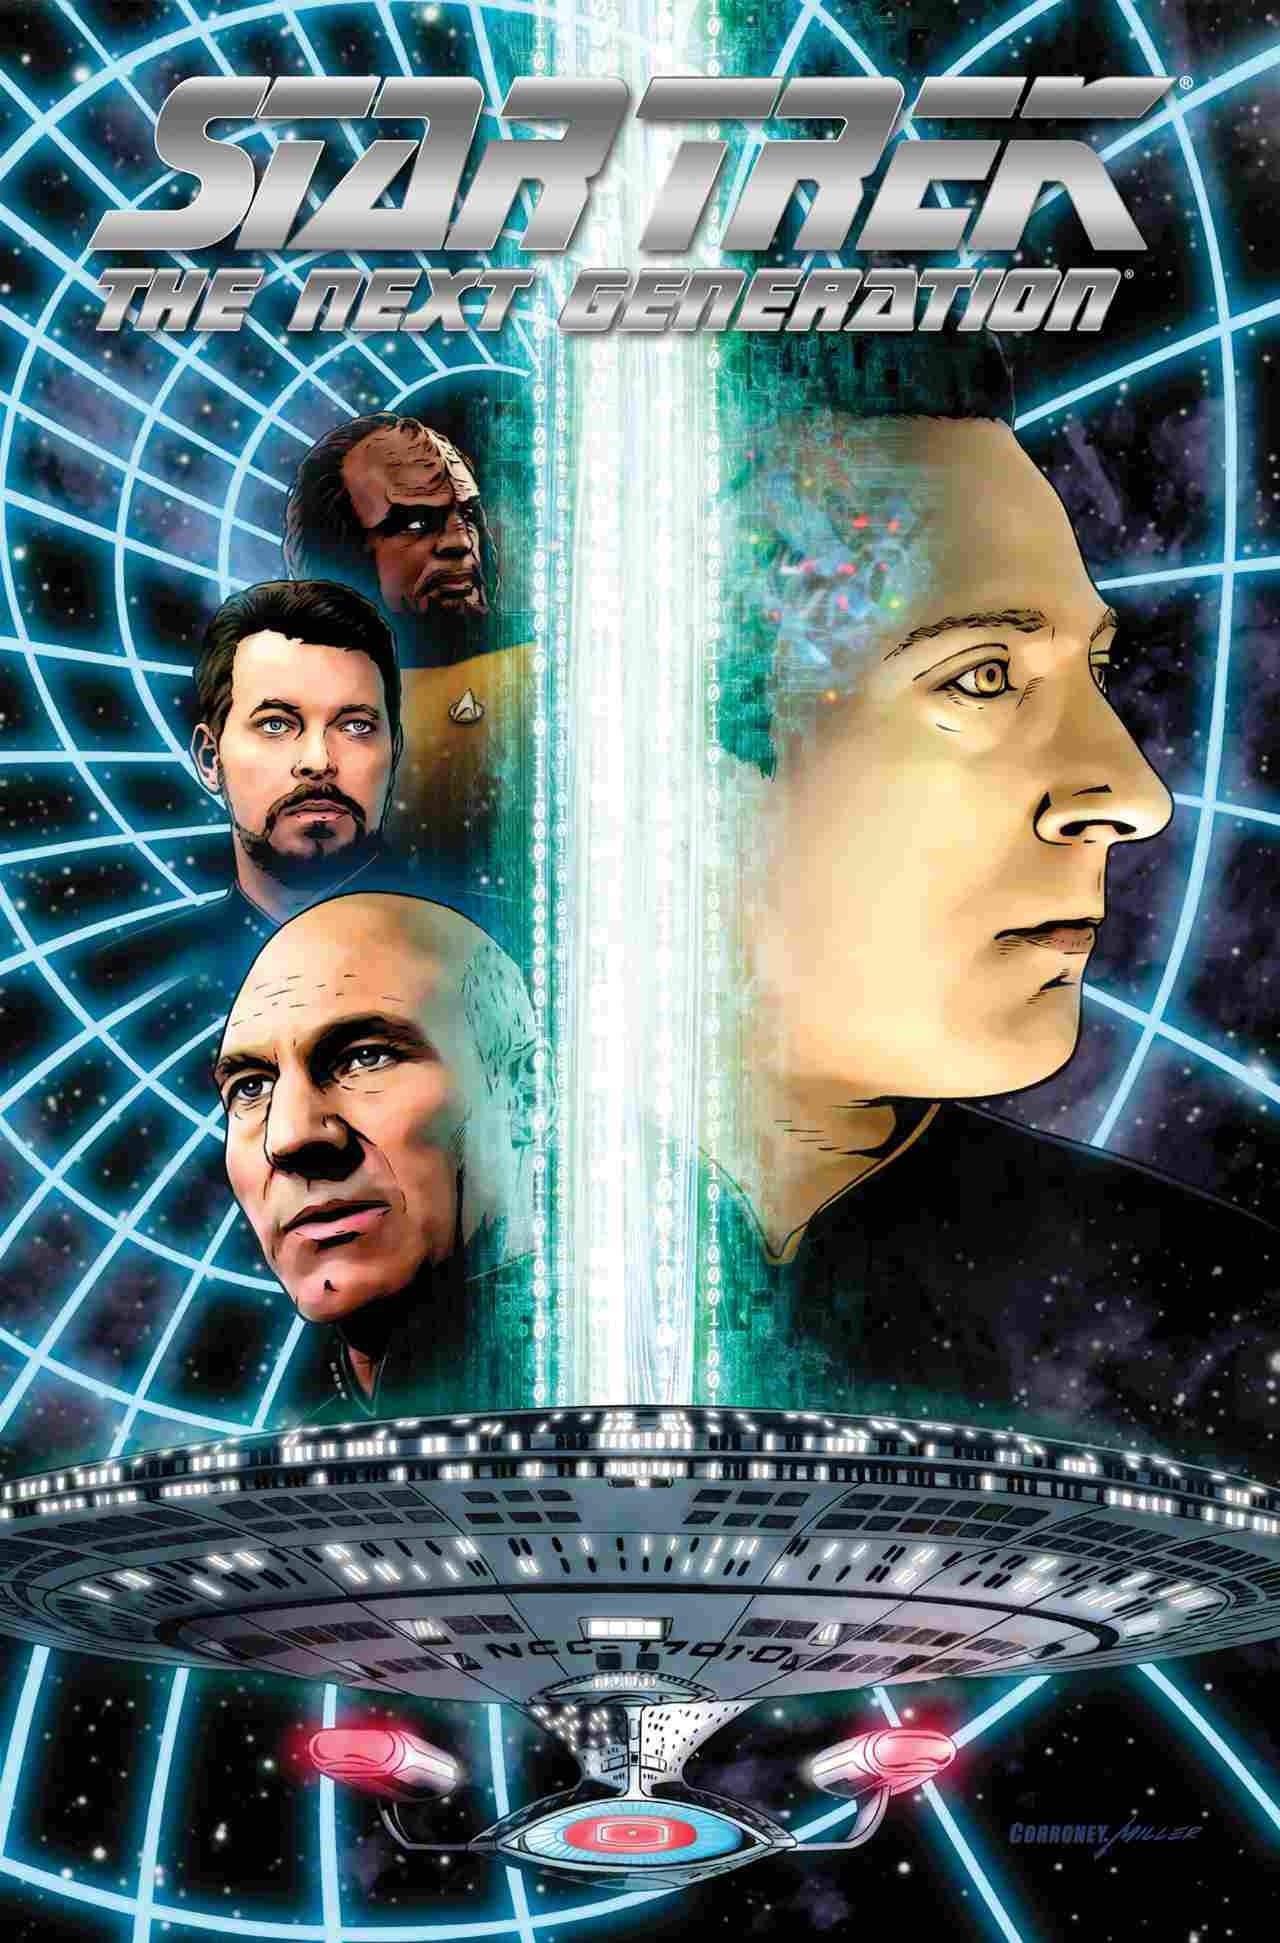 Star Trek TNG The Missions Continue